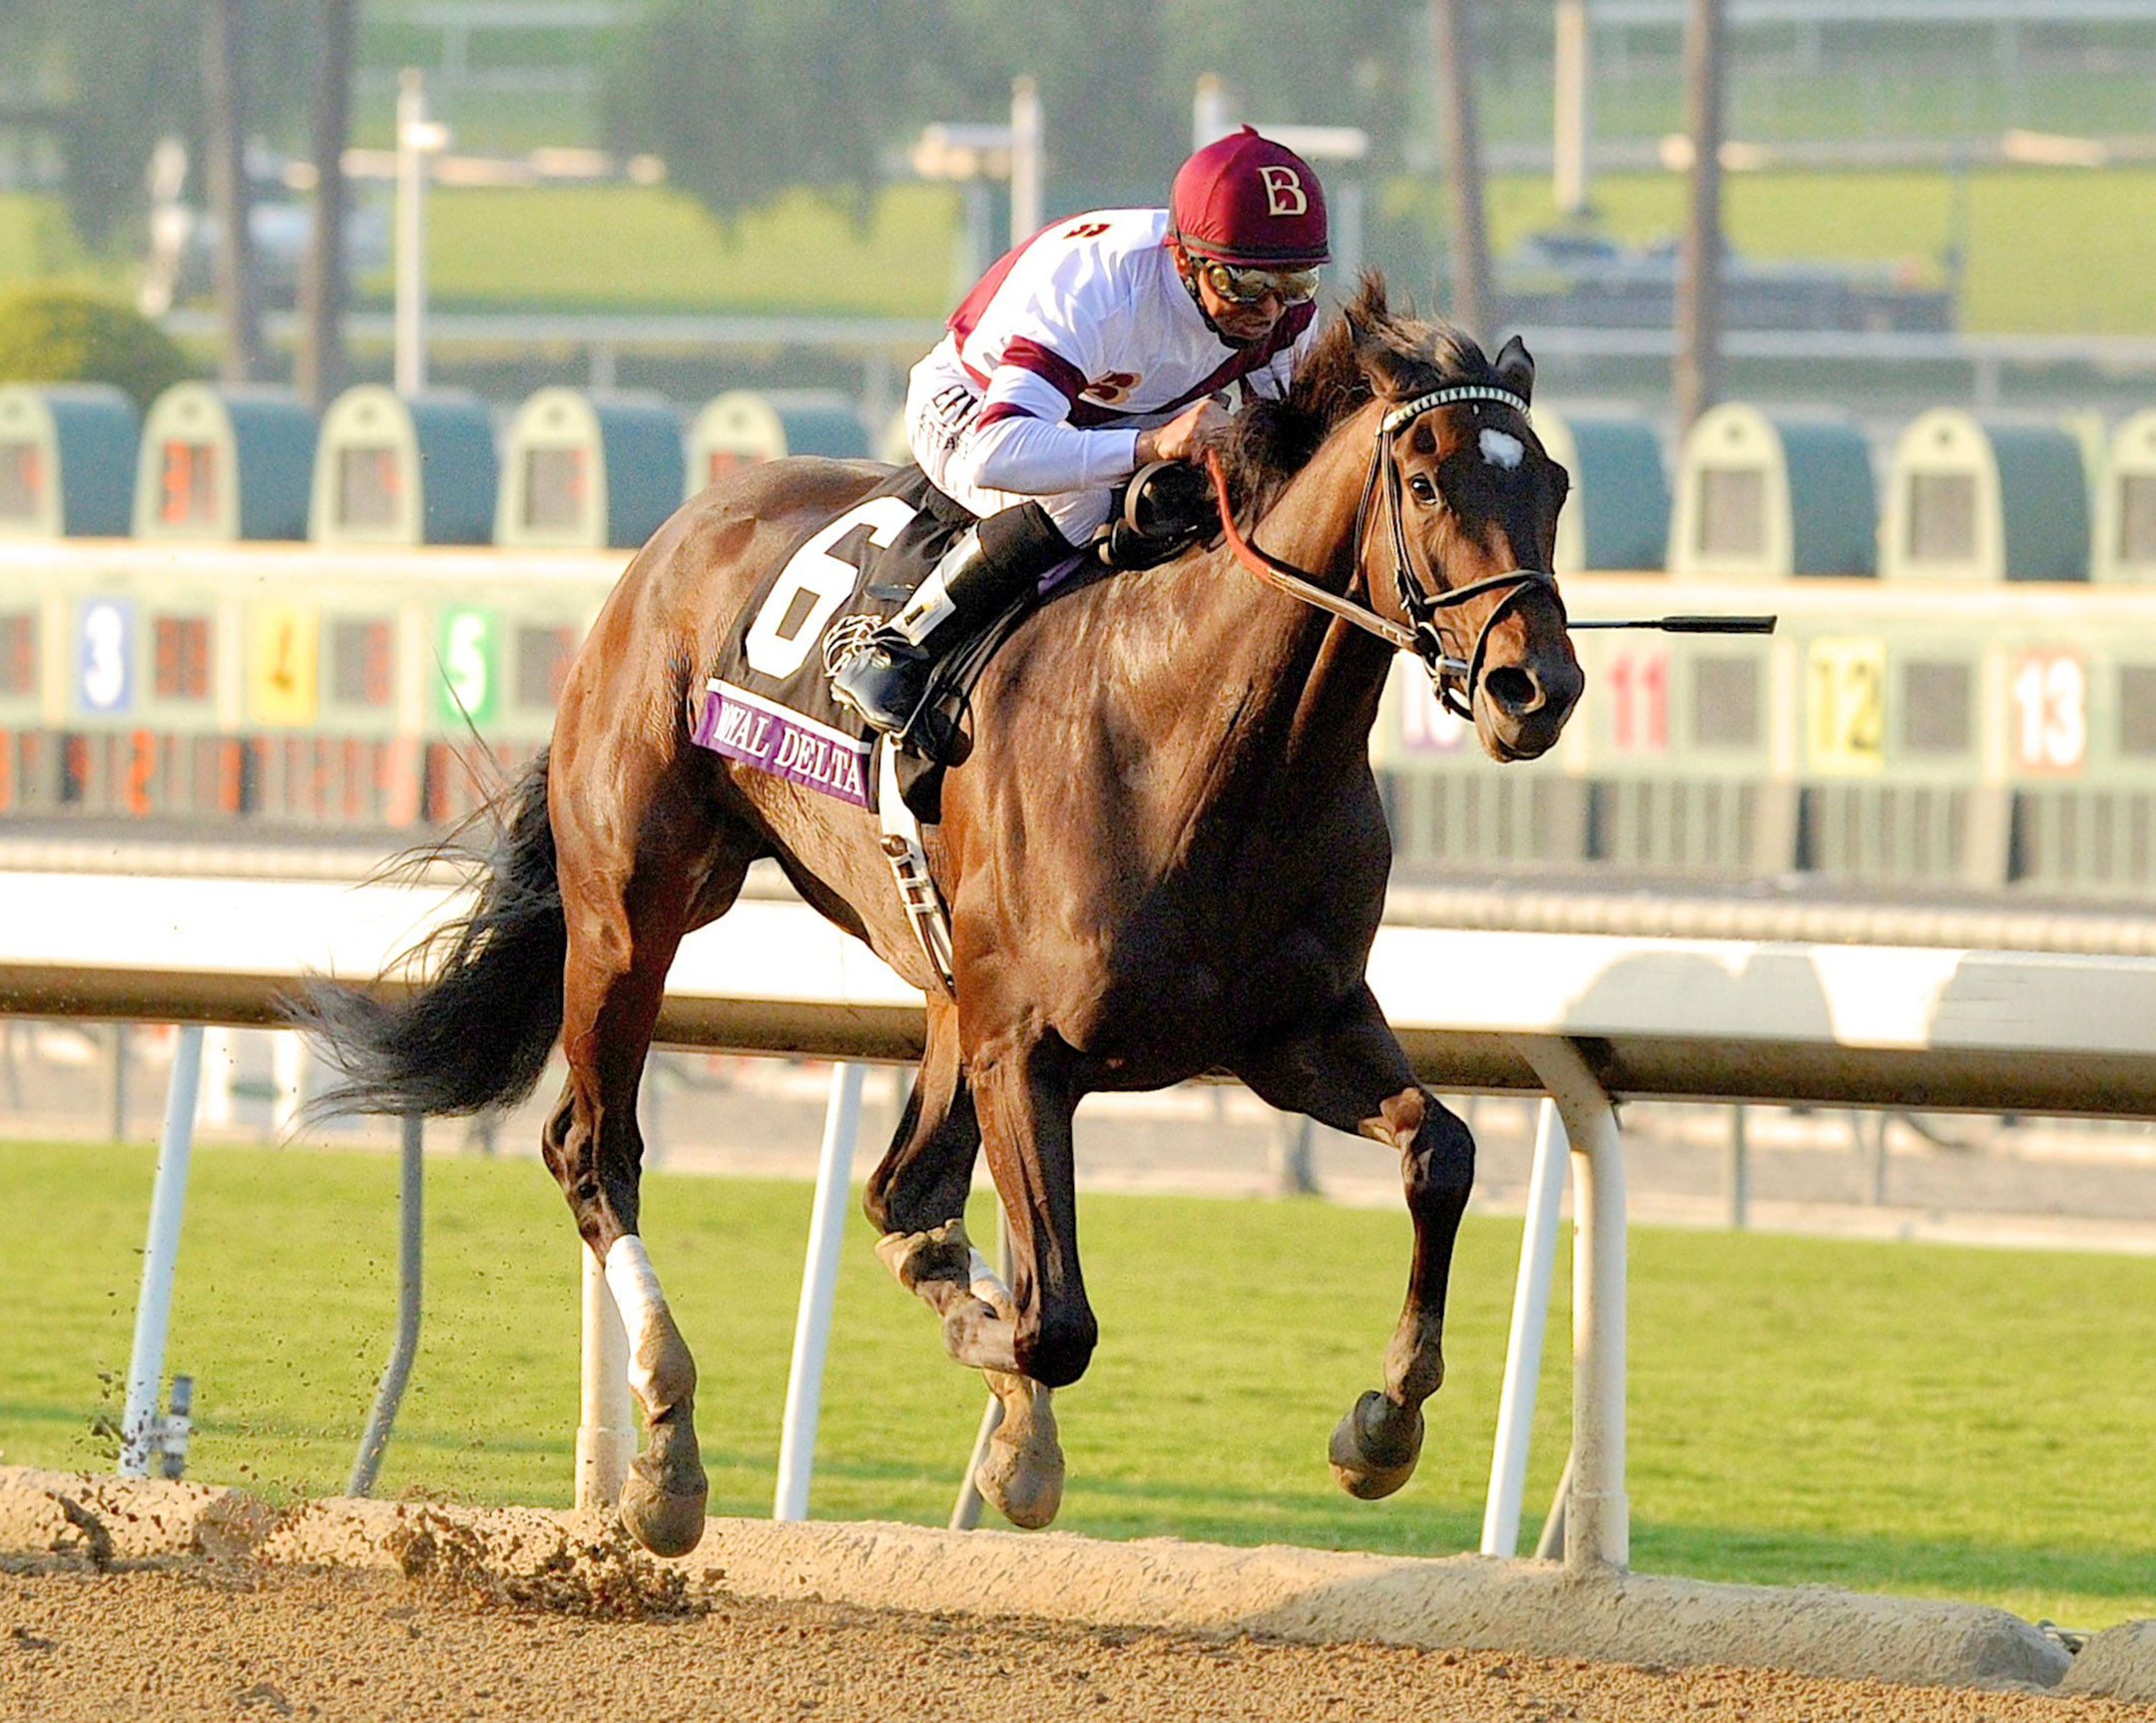 Royal Delta (Mike Smith up) winning the 2012 Breeders' Cup Ladies Classic at Santa Anita (Bob Mayberger)